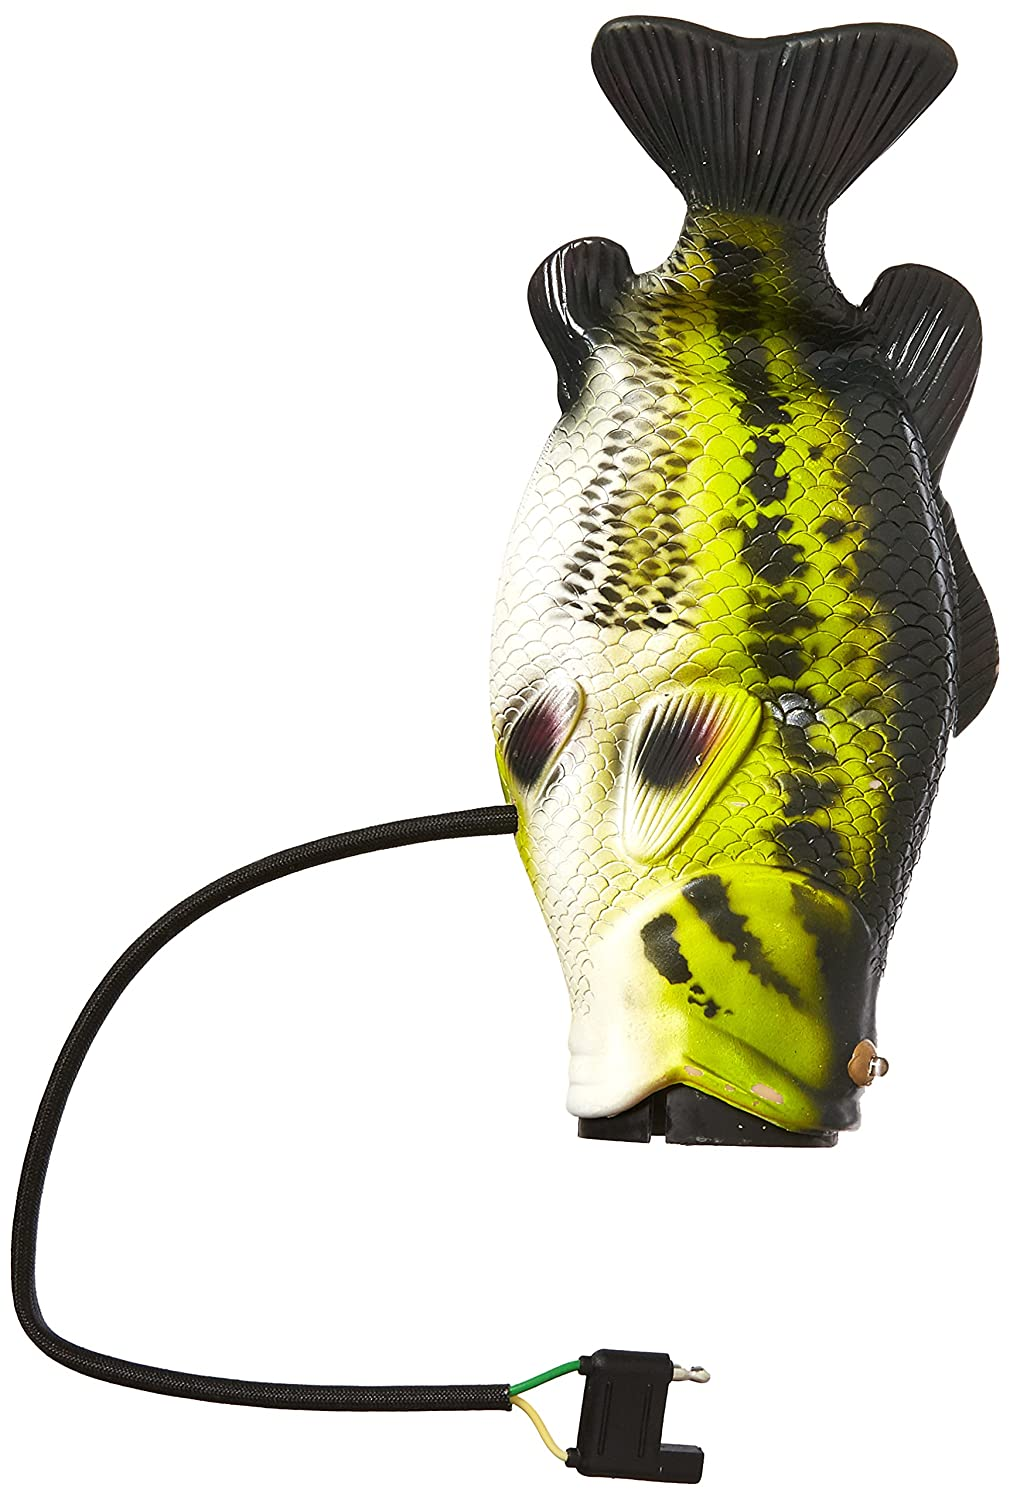 Hitch Critters 3492 Flopping Bass Moving Ball Hitch Cover and Brake Light